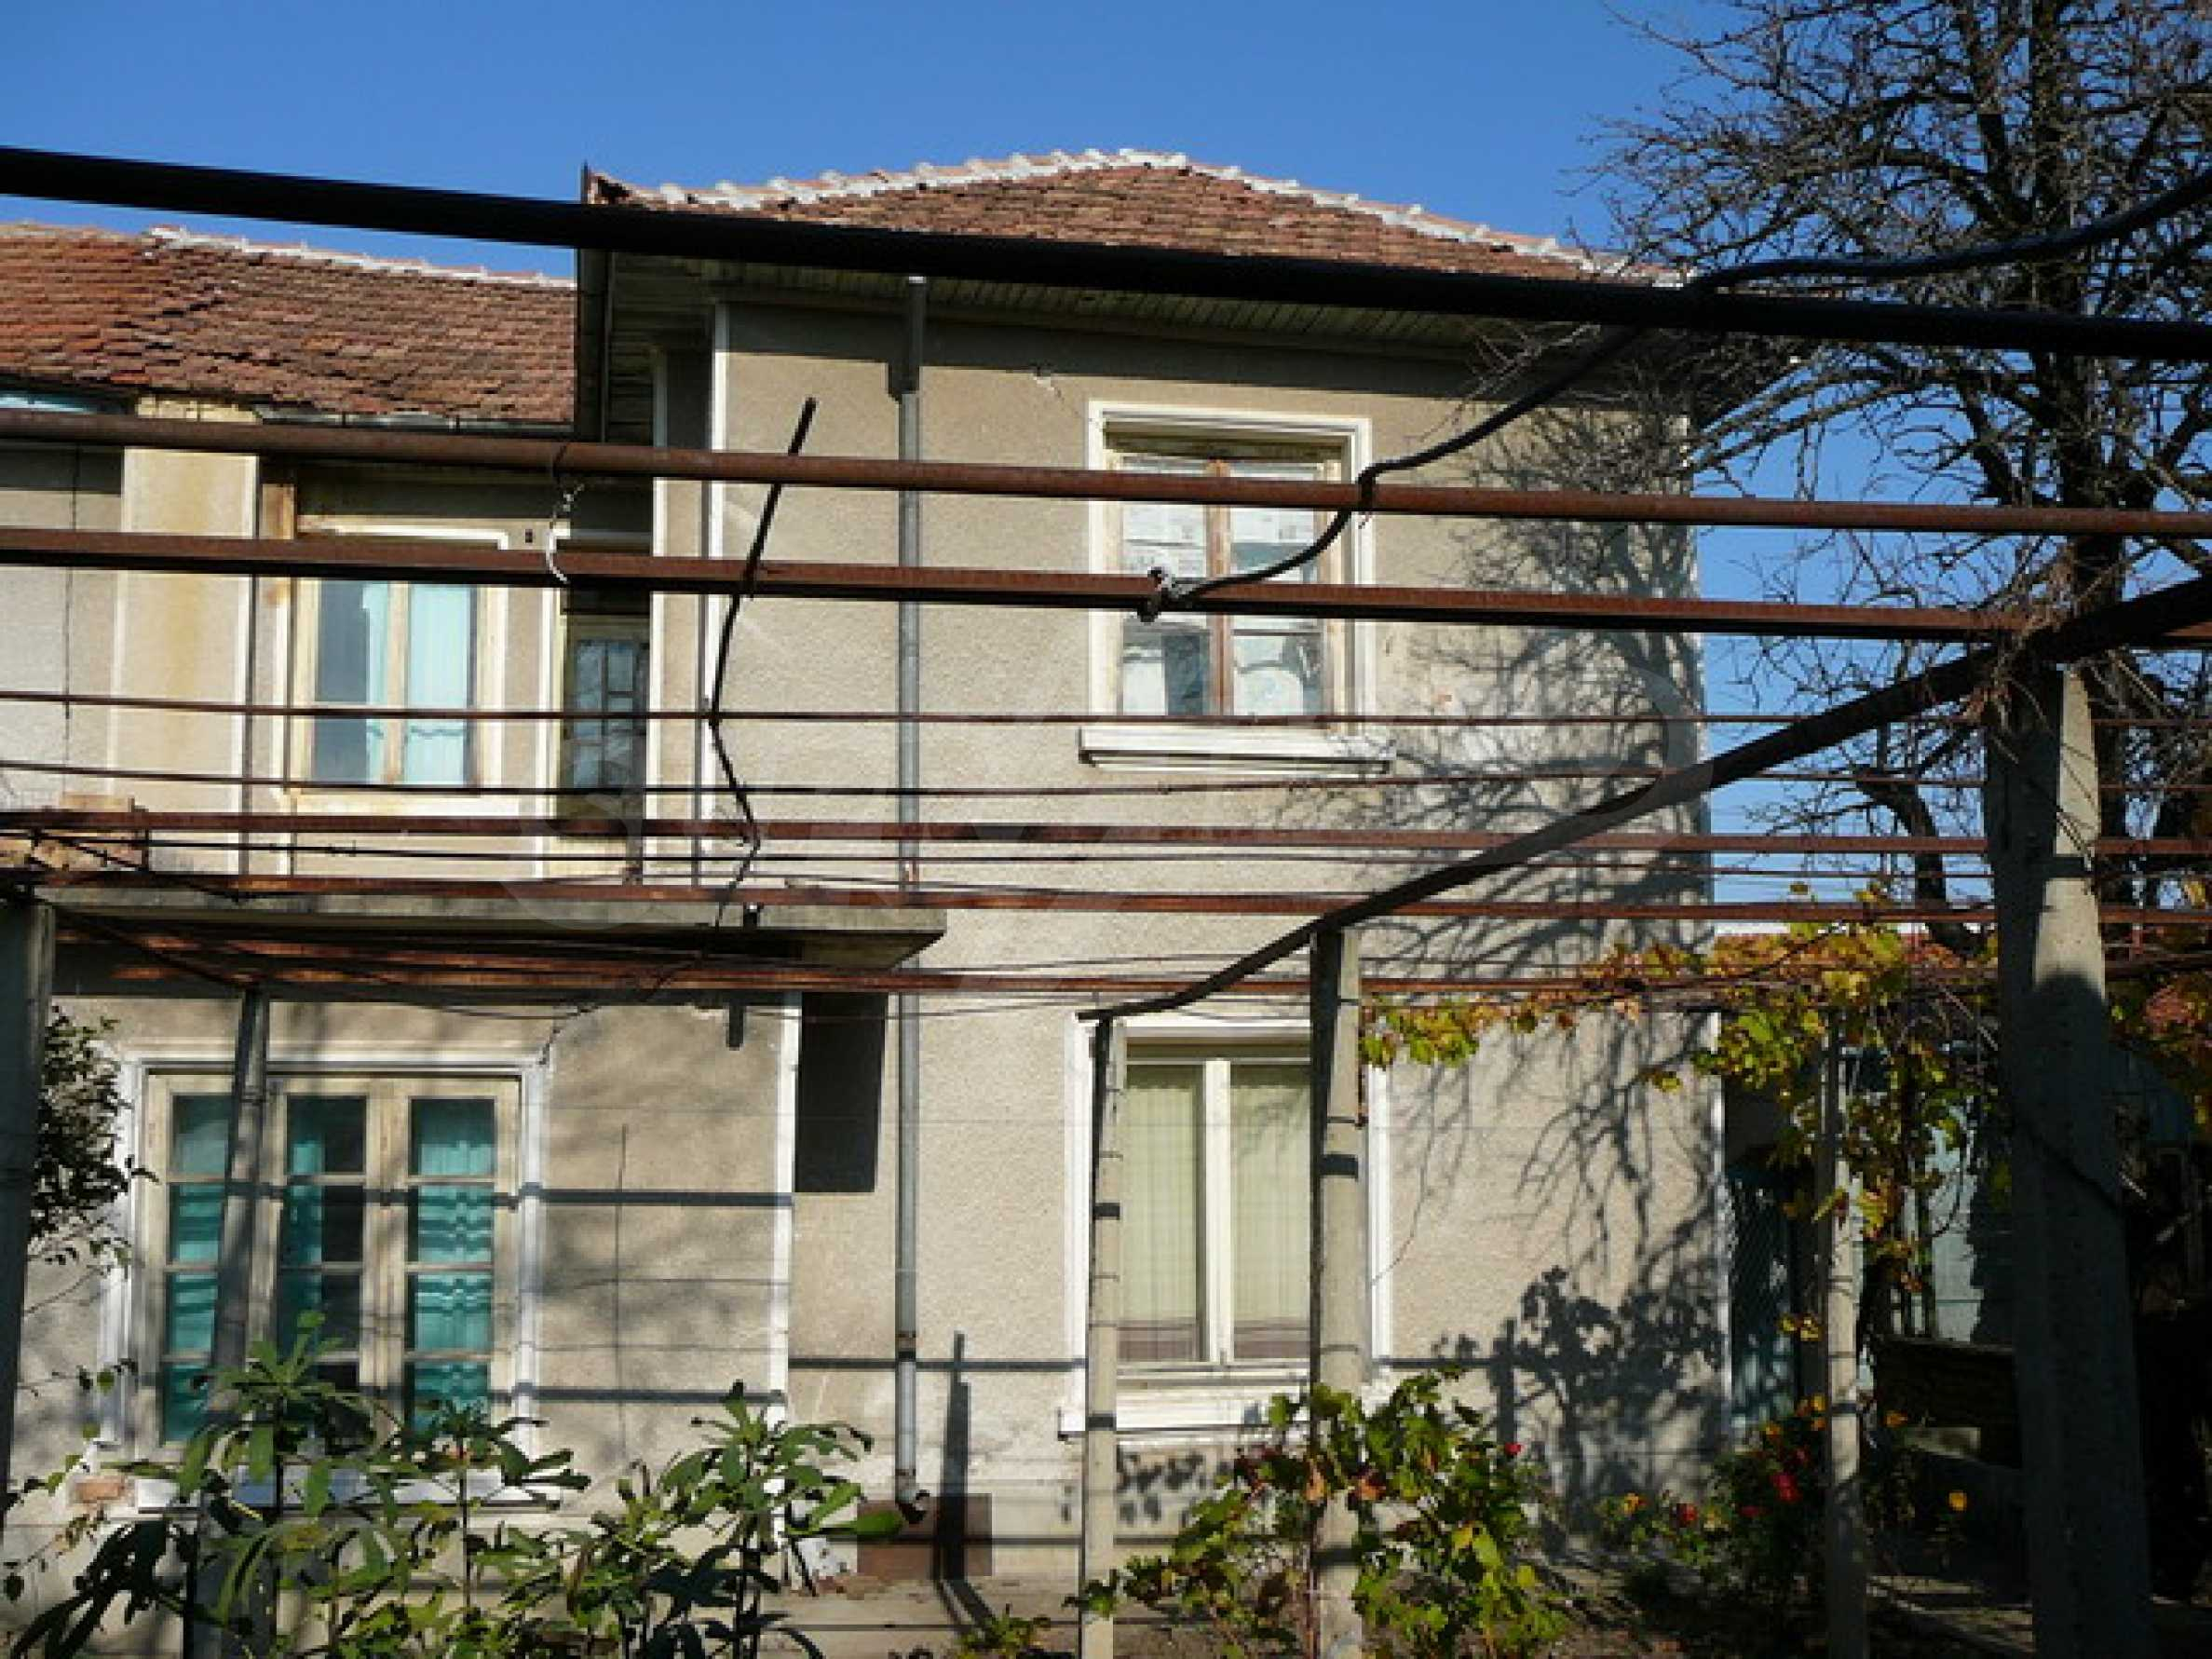 House for sale in a village close to Veliko Tarnovo 27